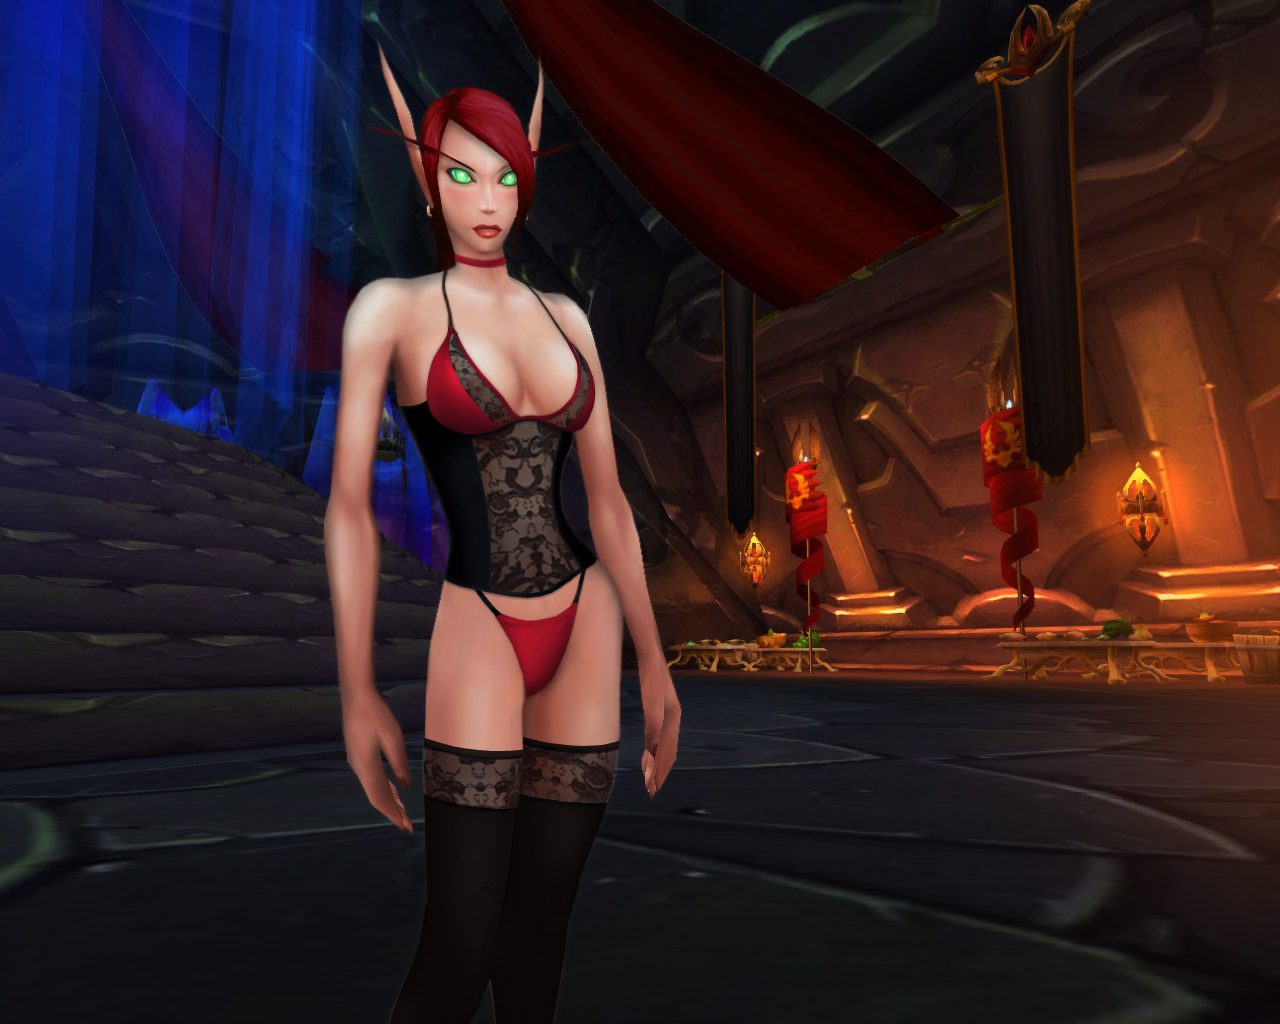 World os pornocraft elf 3d exposed picture